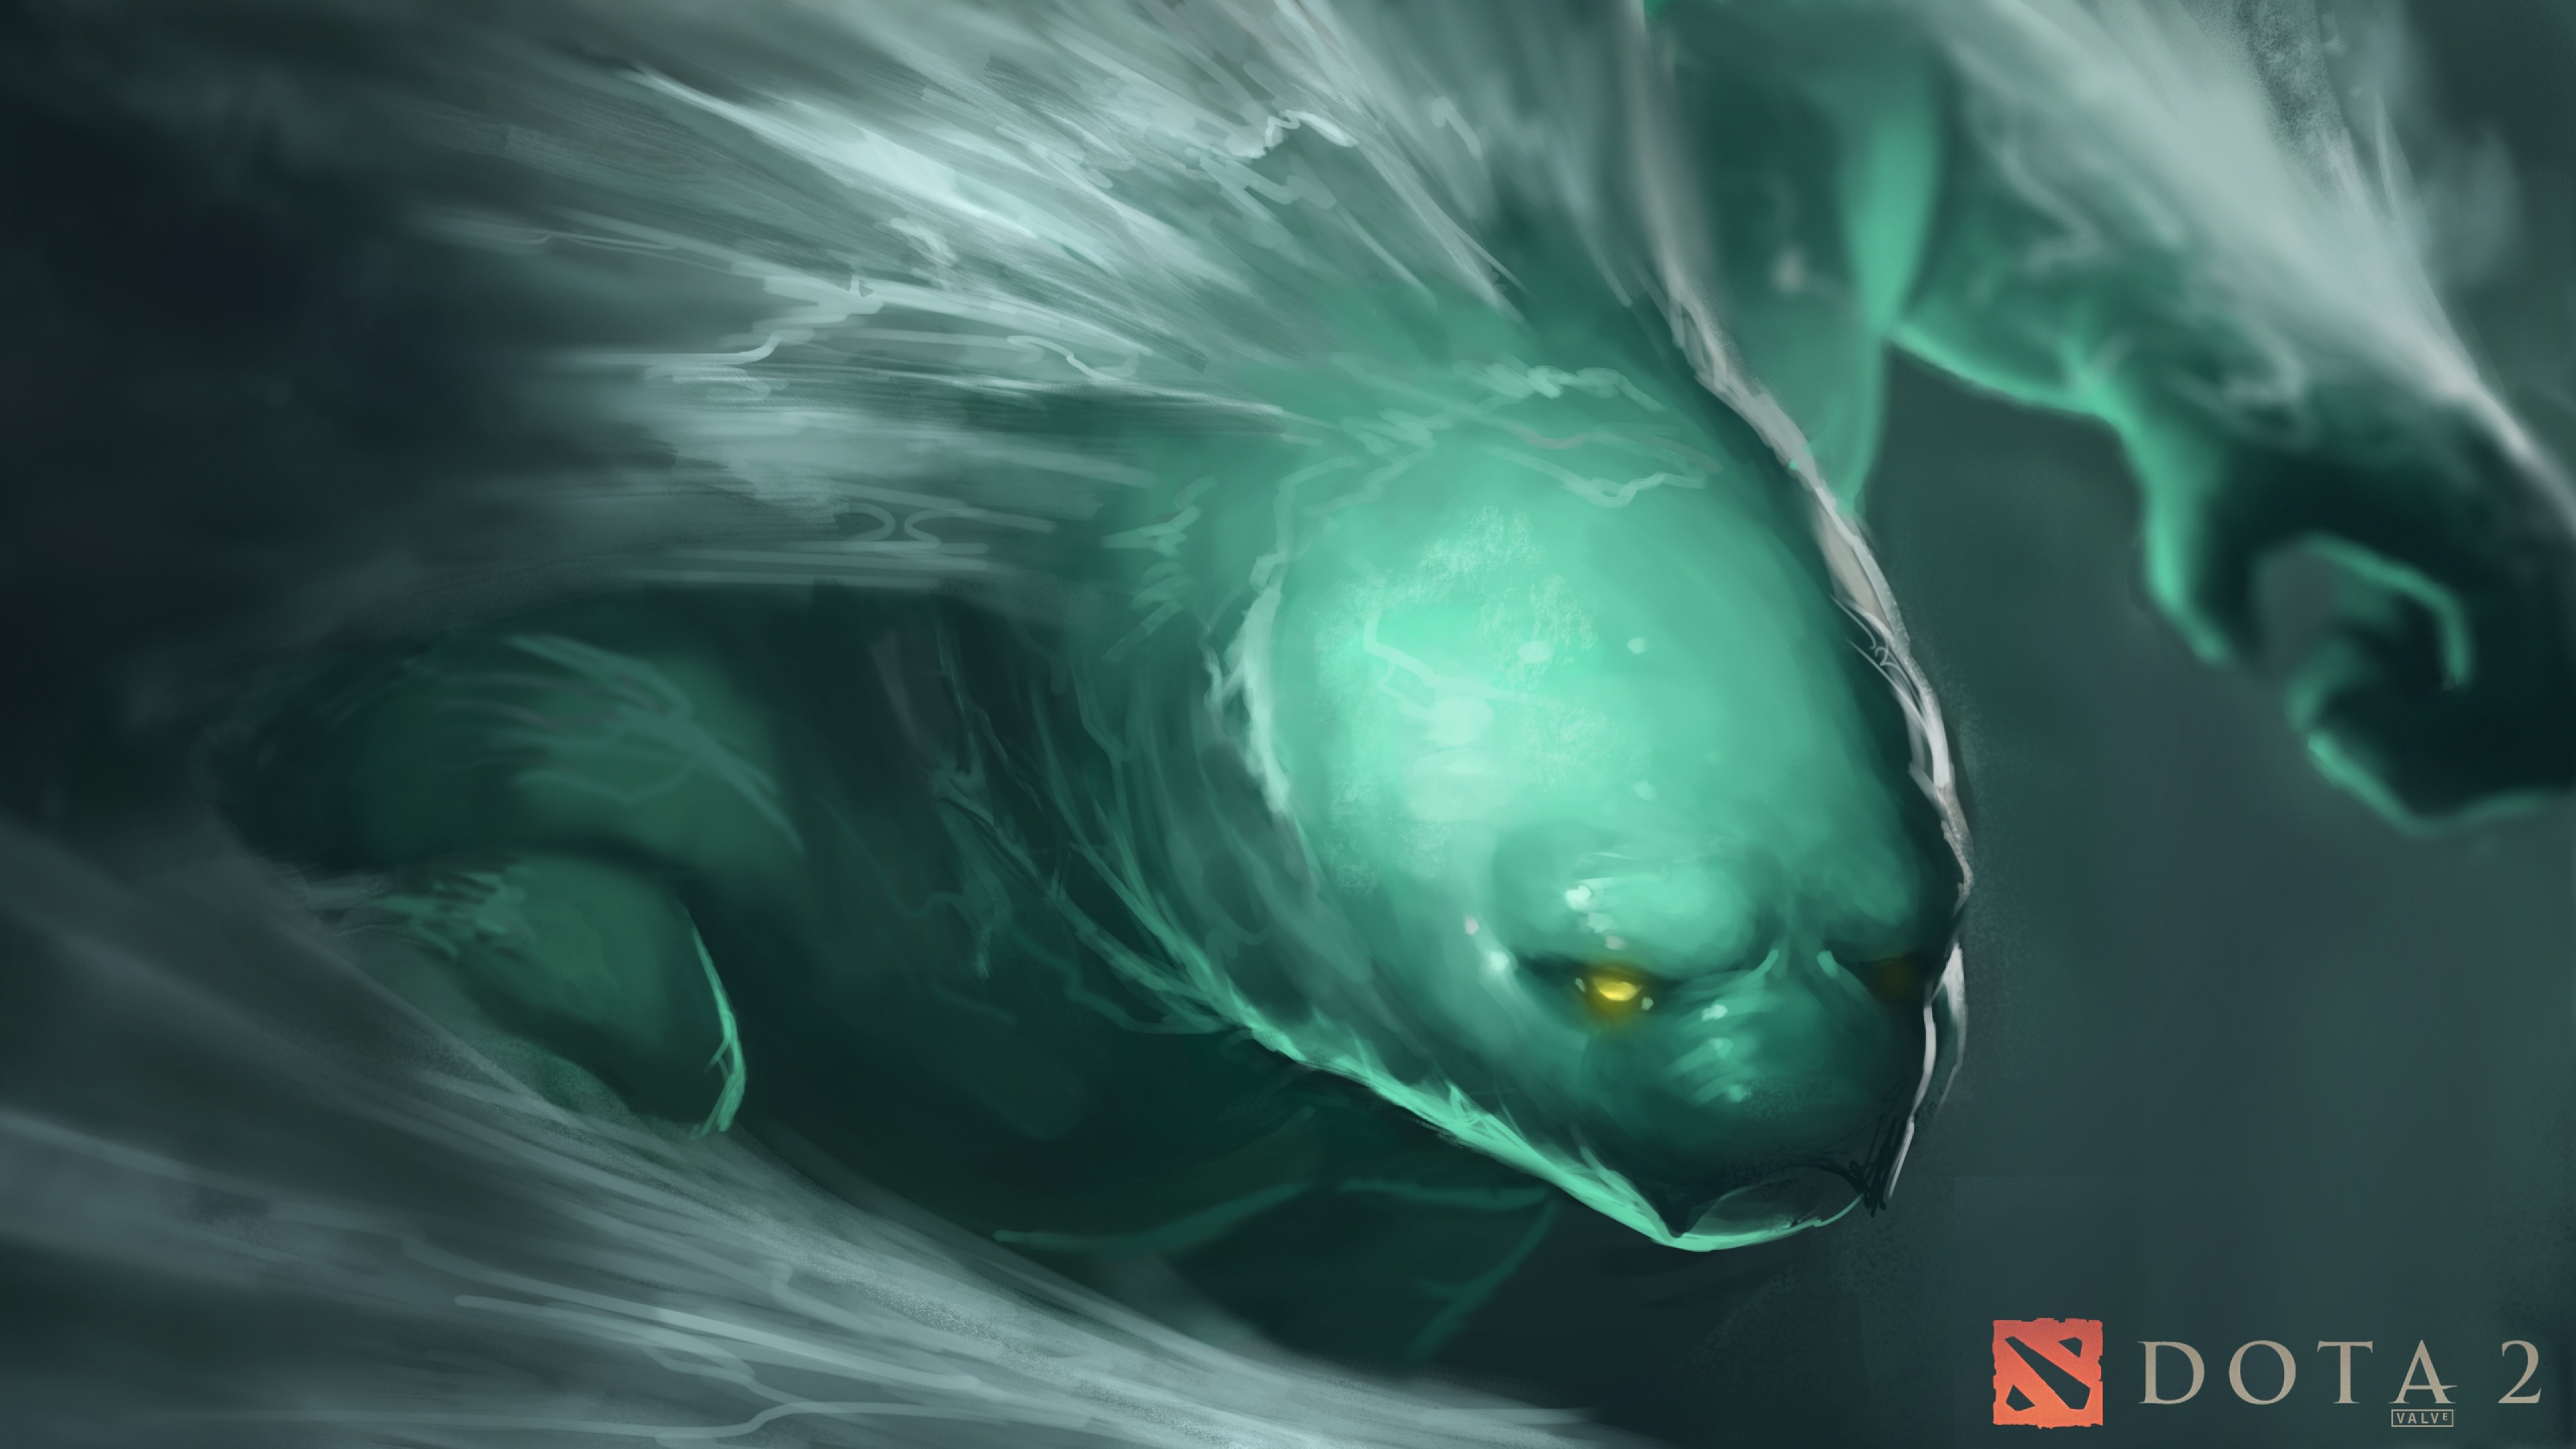 Dota2 : Morphling Backgrounds